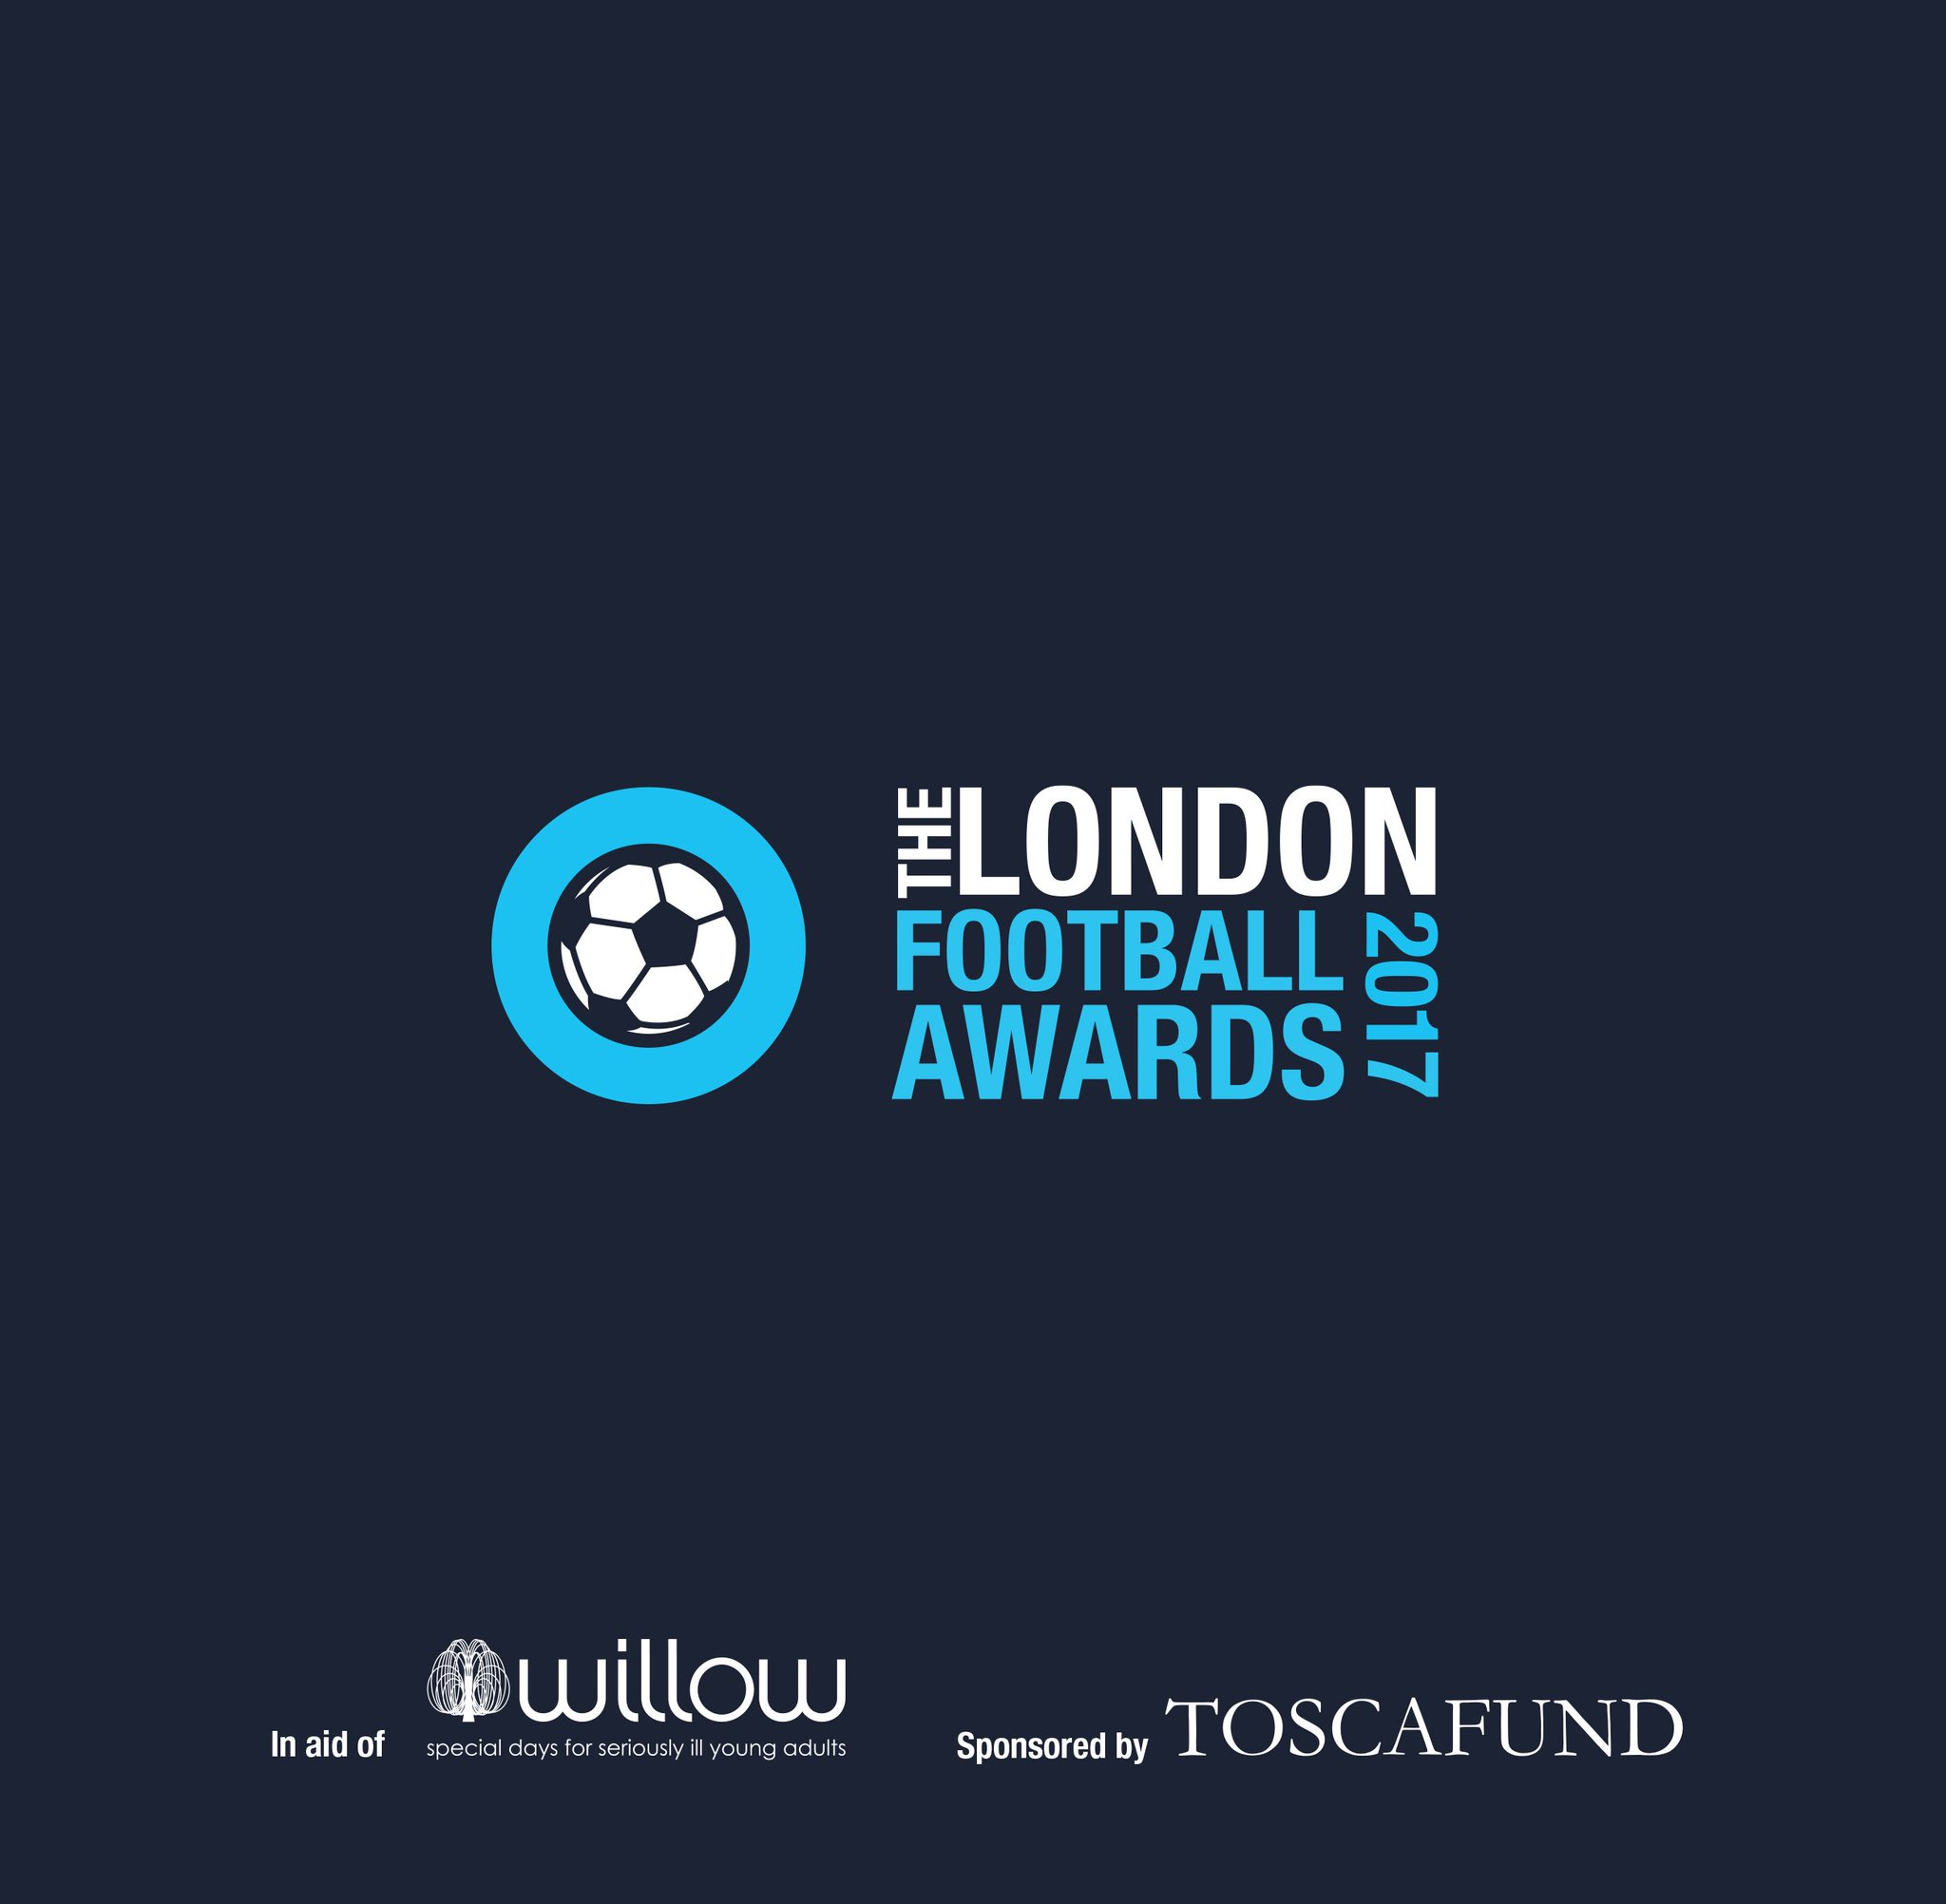 The one and only @BBCSport presenter @garylineker hosts the London Football Awards 2017 tonight at 8pm. See you there? #LFA17 https://t.co/UVo9bSXasC